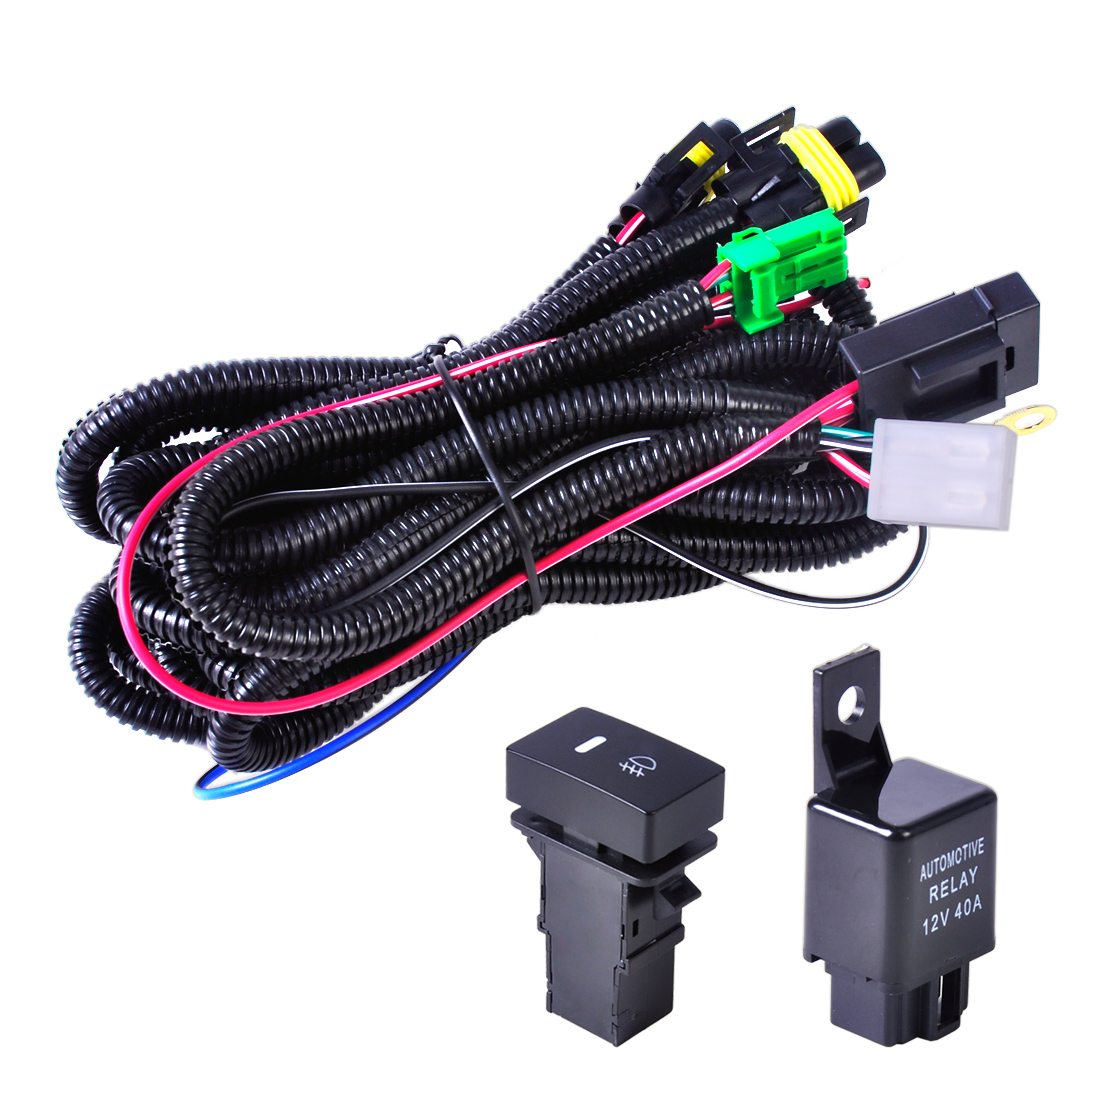 ford focus acura nissan wiring harness sockets switch. Black Bedroom Furniture Sets. Home Design Ideas